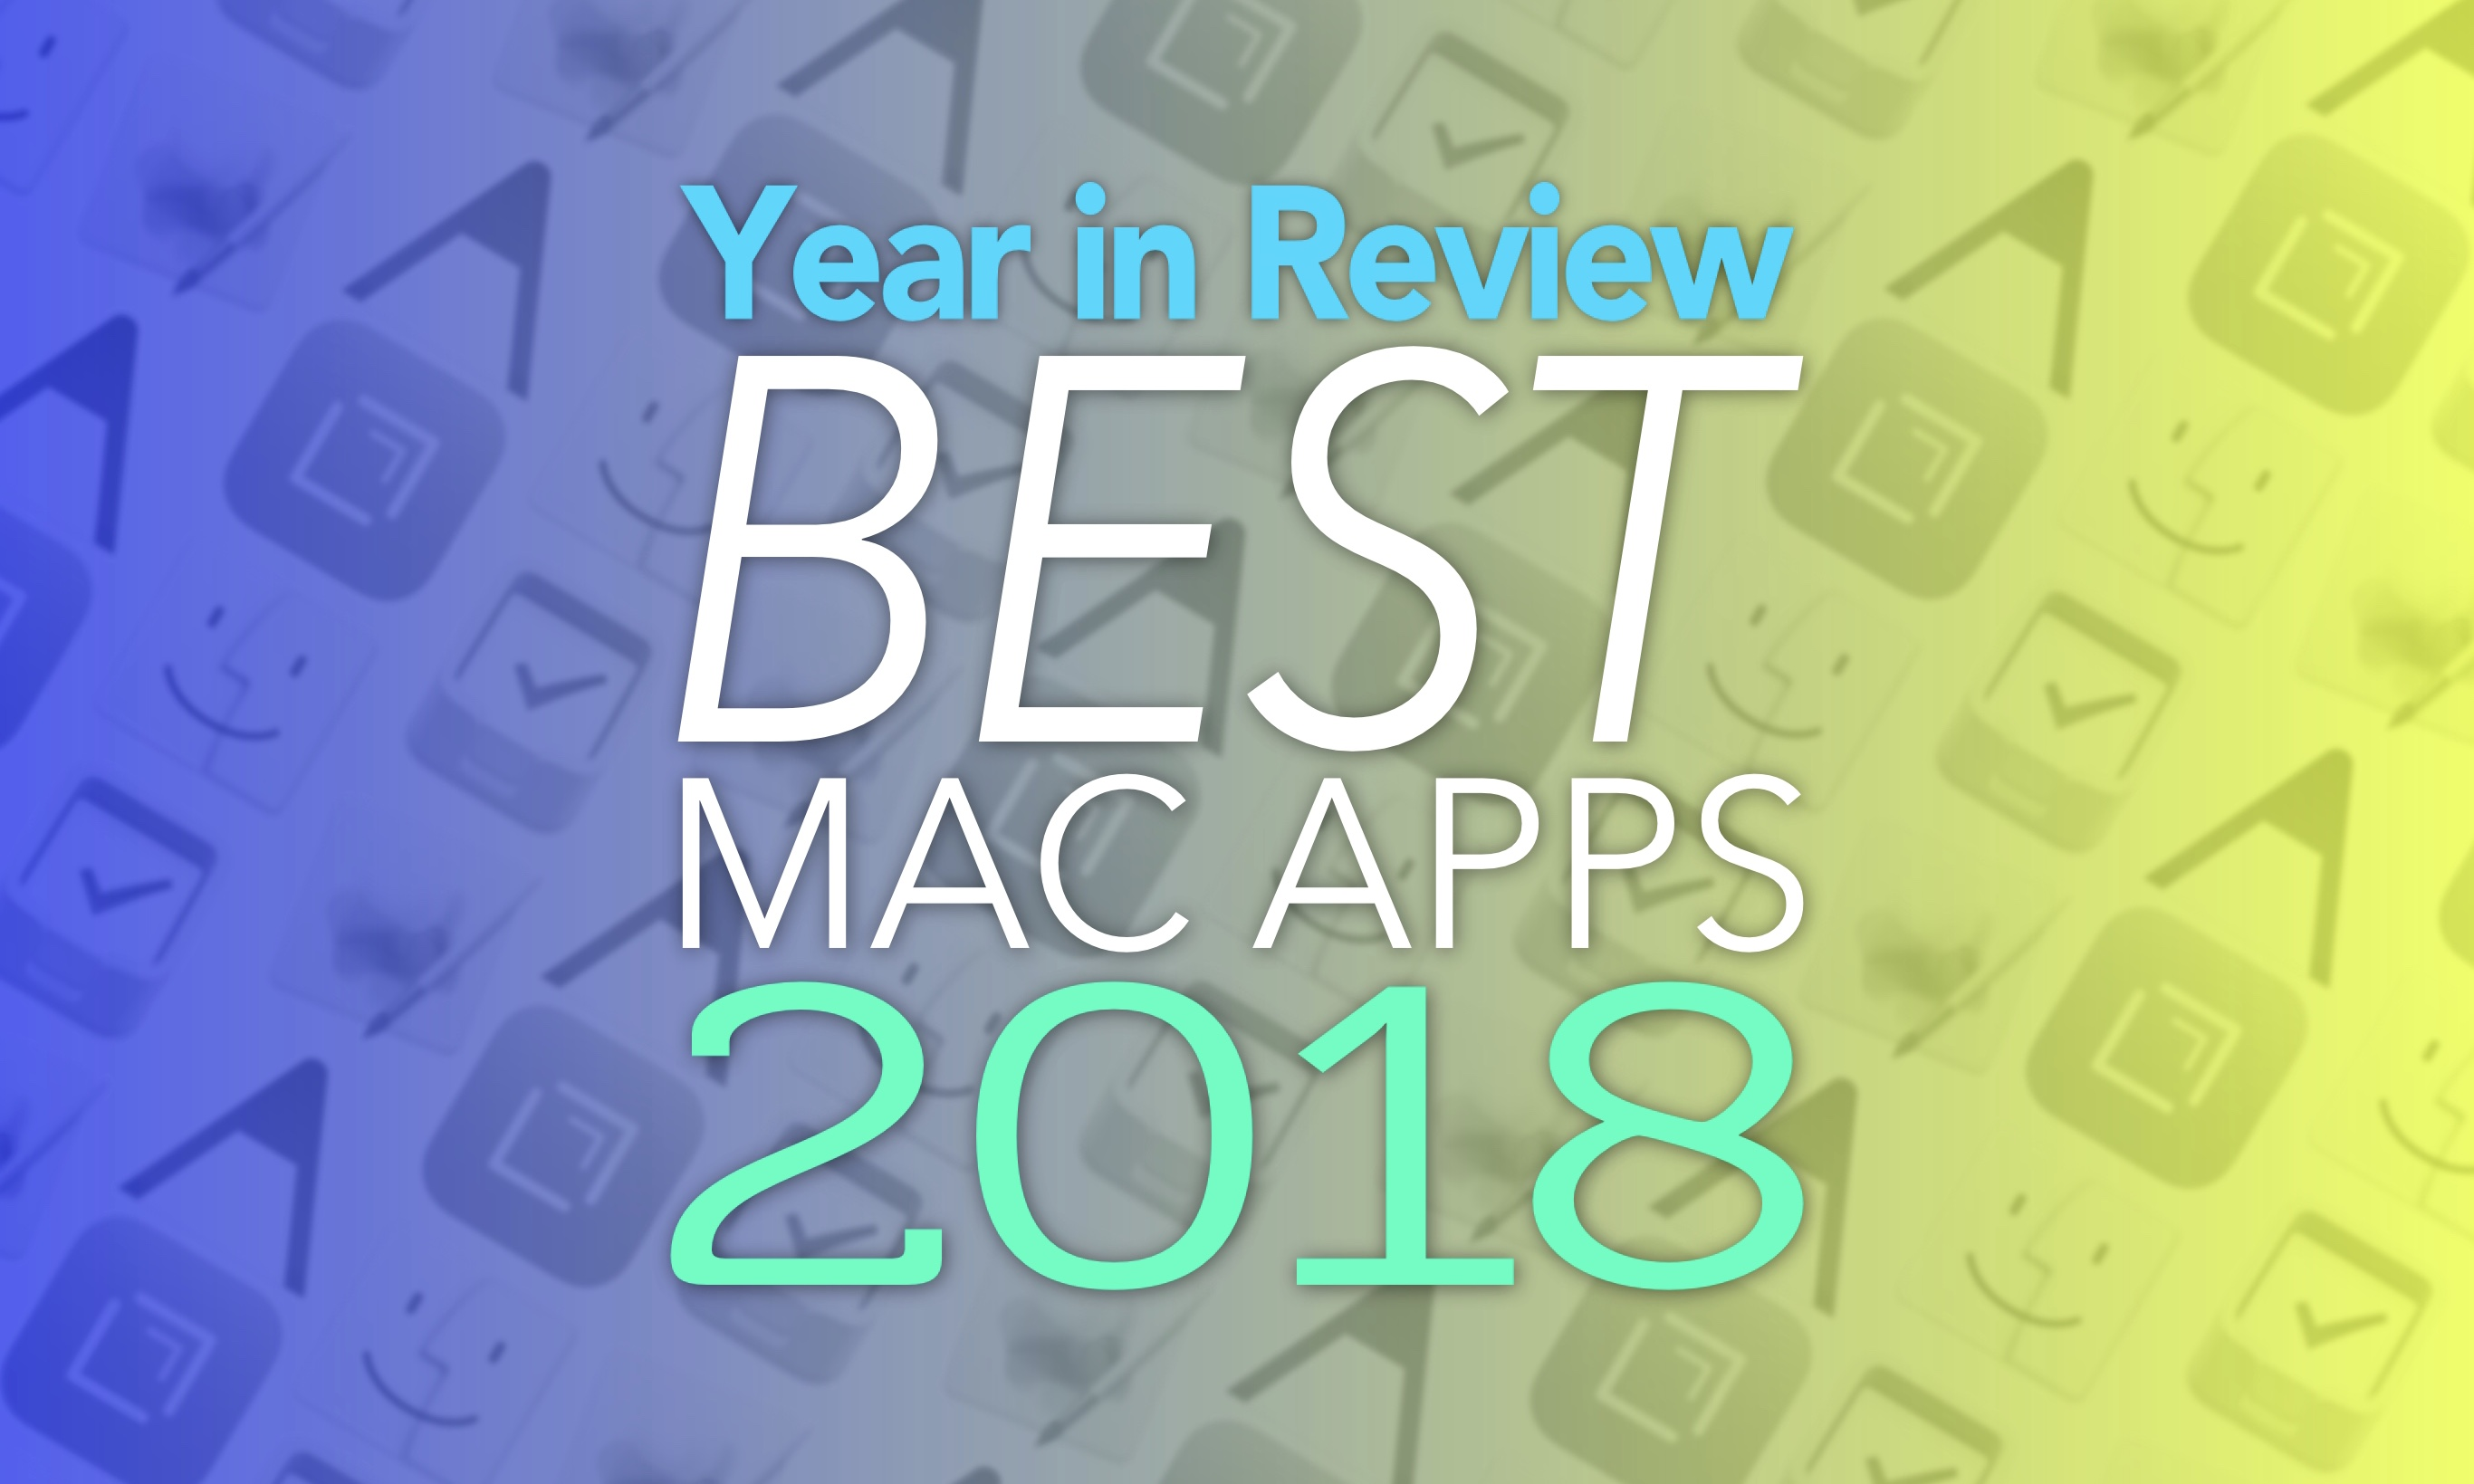 Year in Review Best Mac Apps 2018: Make Mac great again with one (or all!) of these top apps.